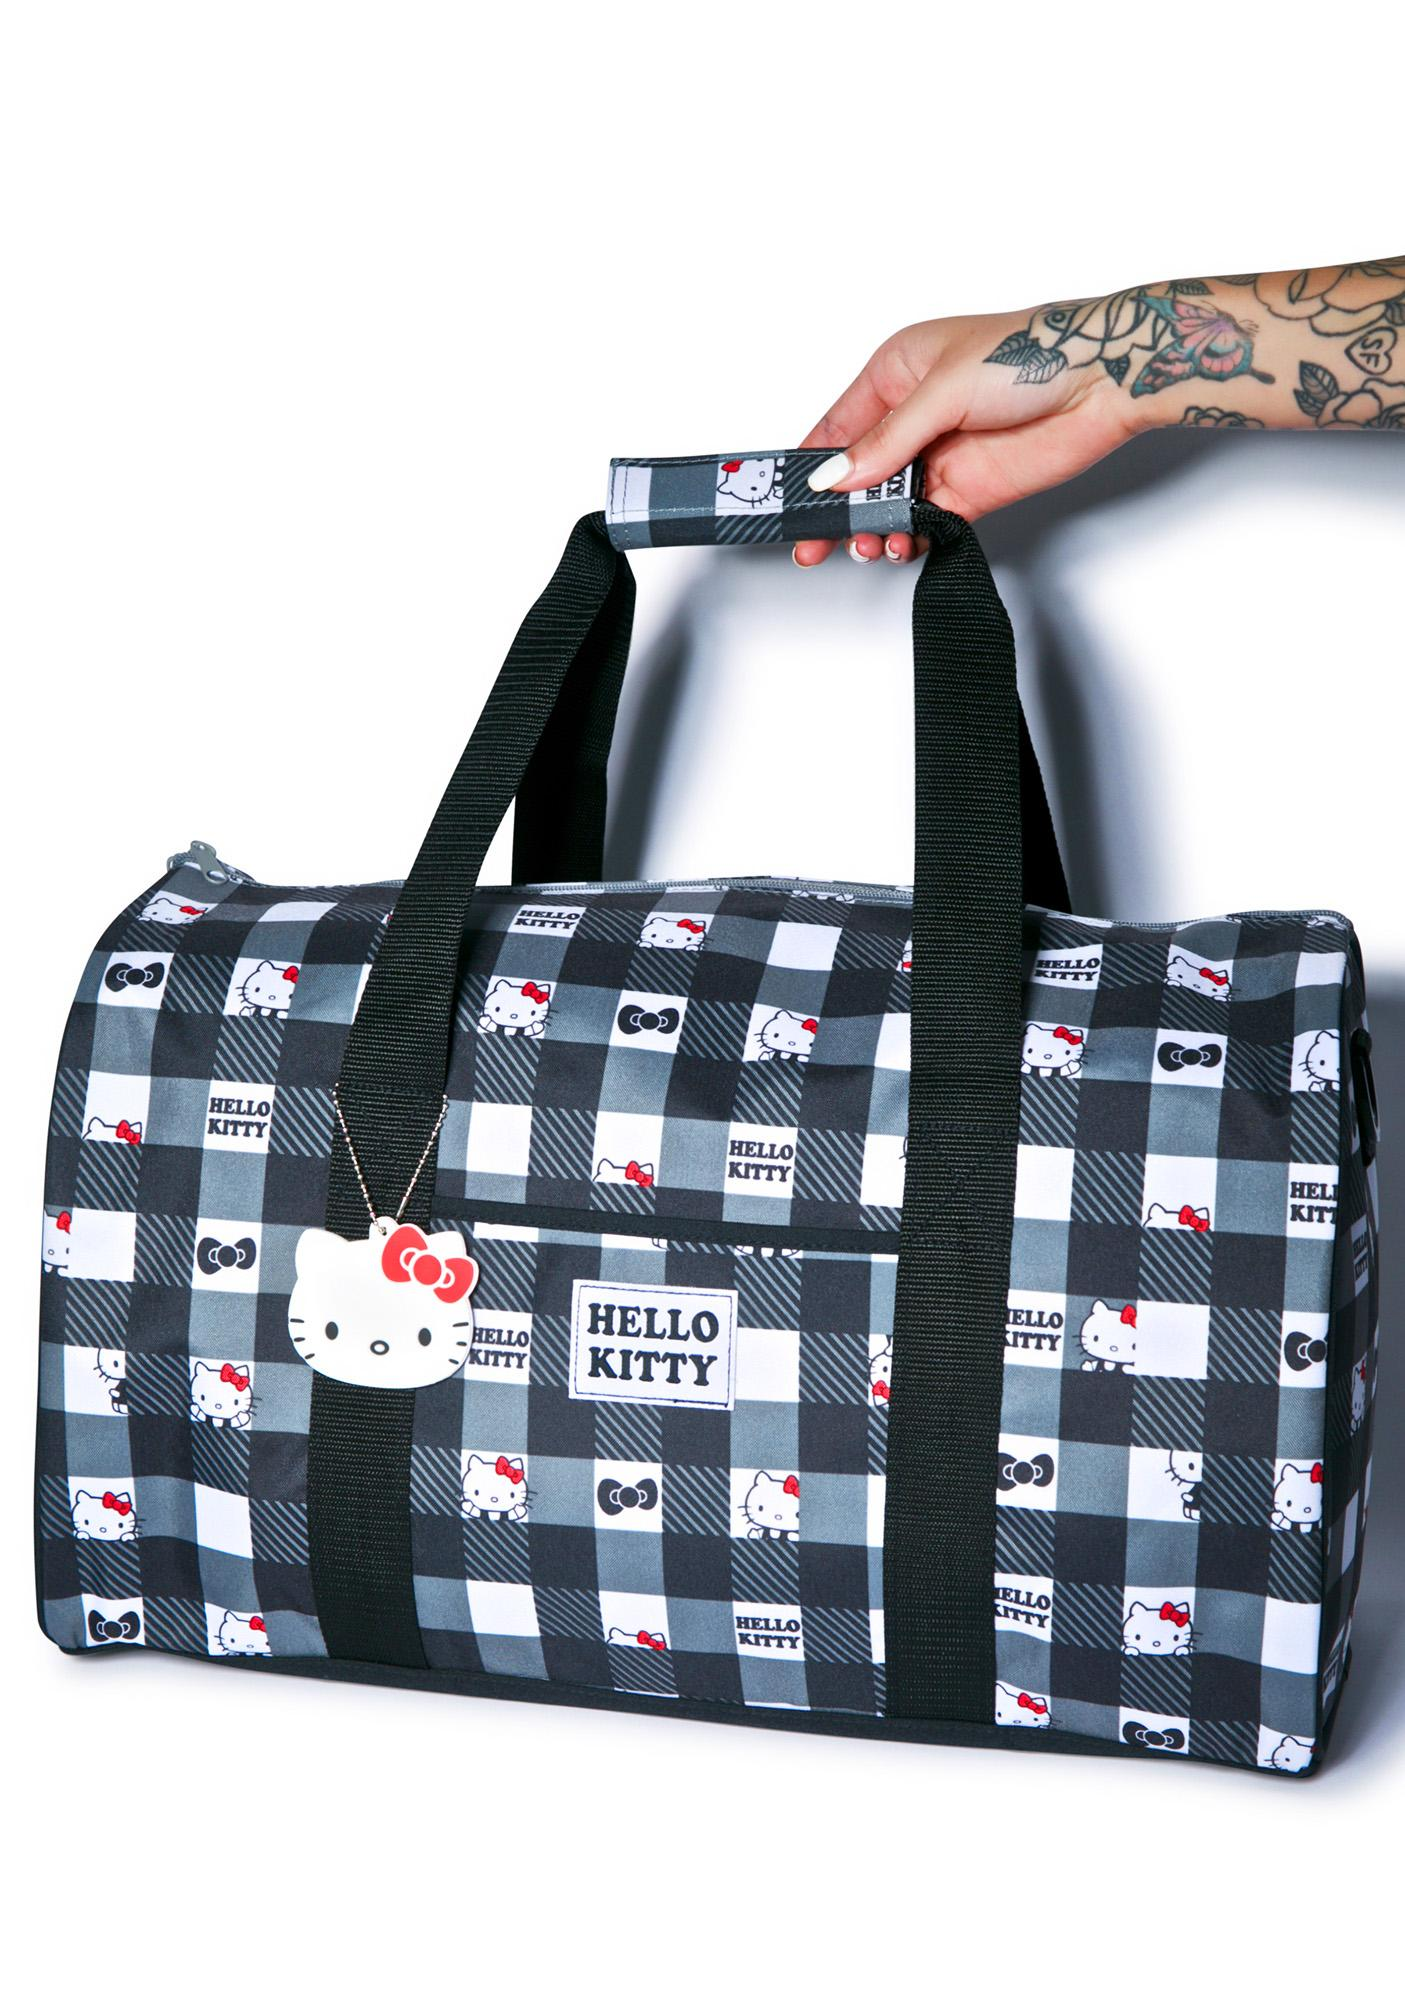 Sanrio Hello Kitty Check Yerself Overnight Bag